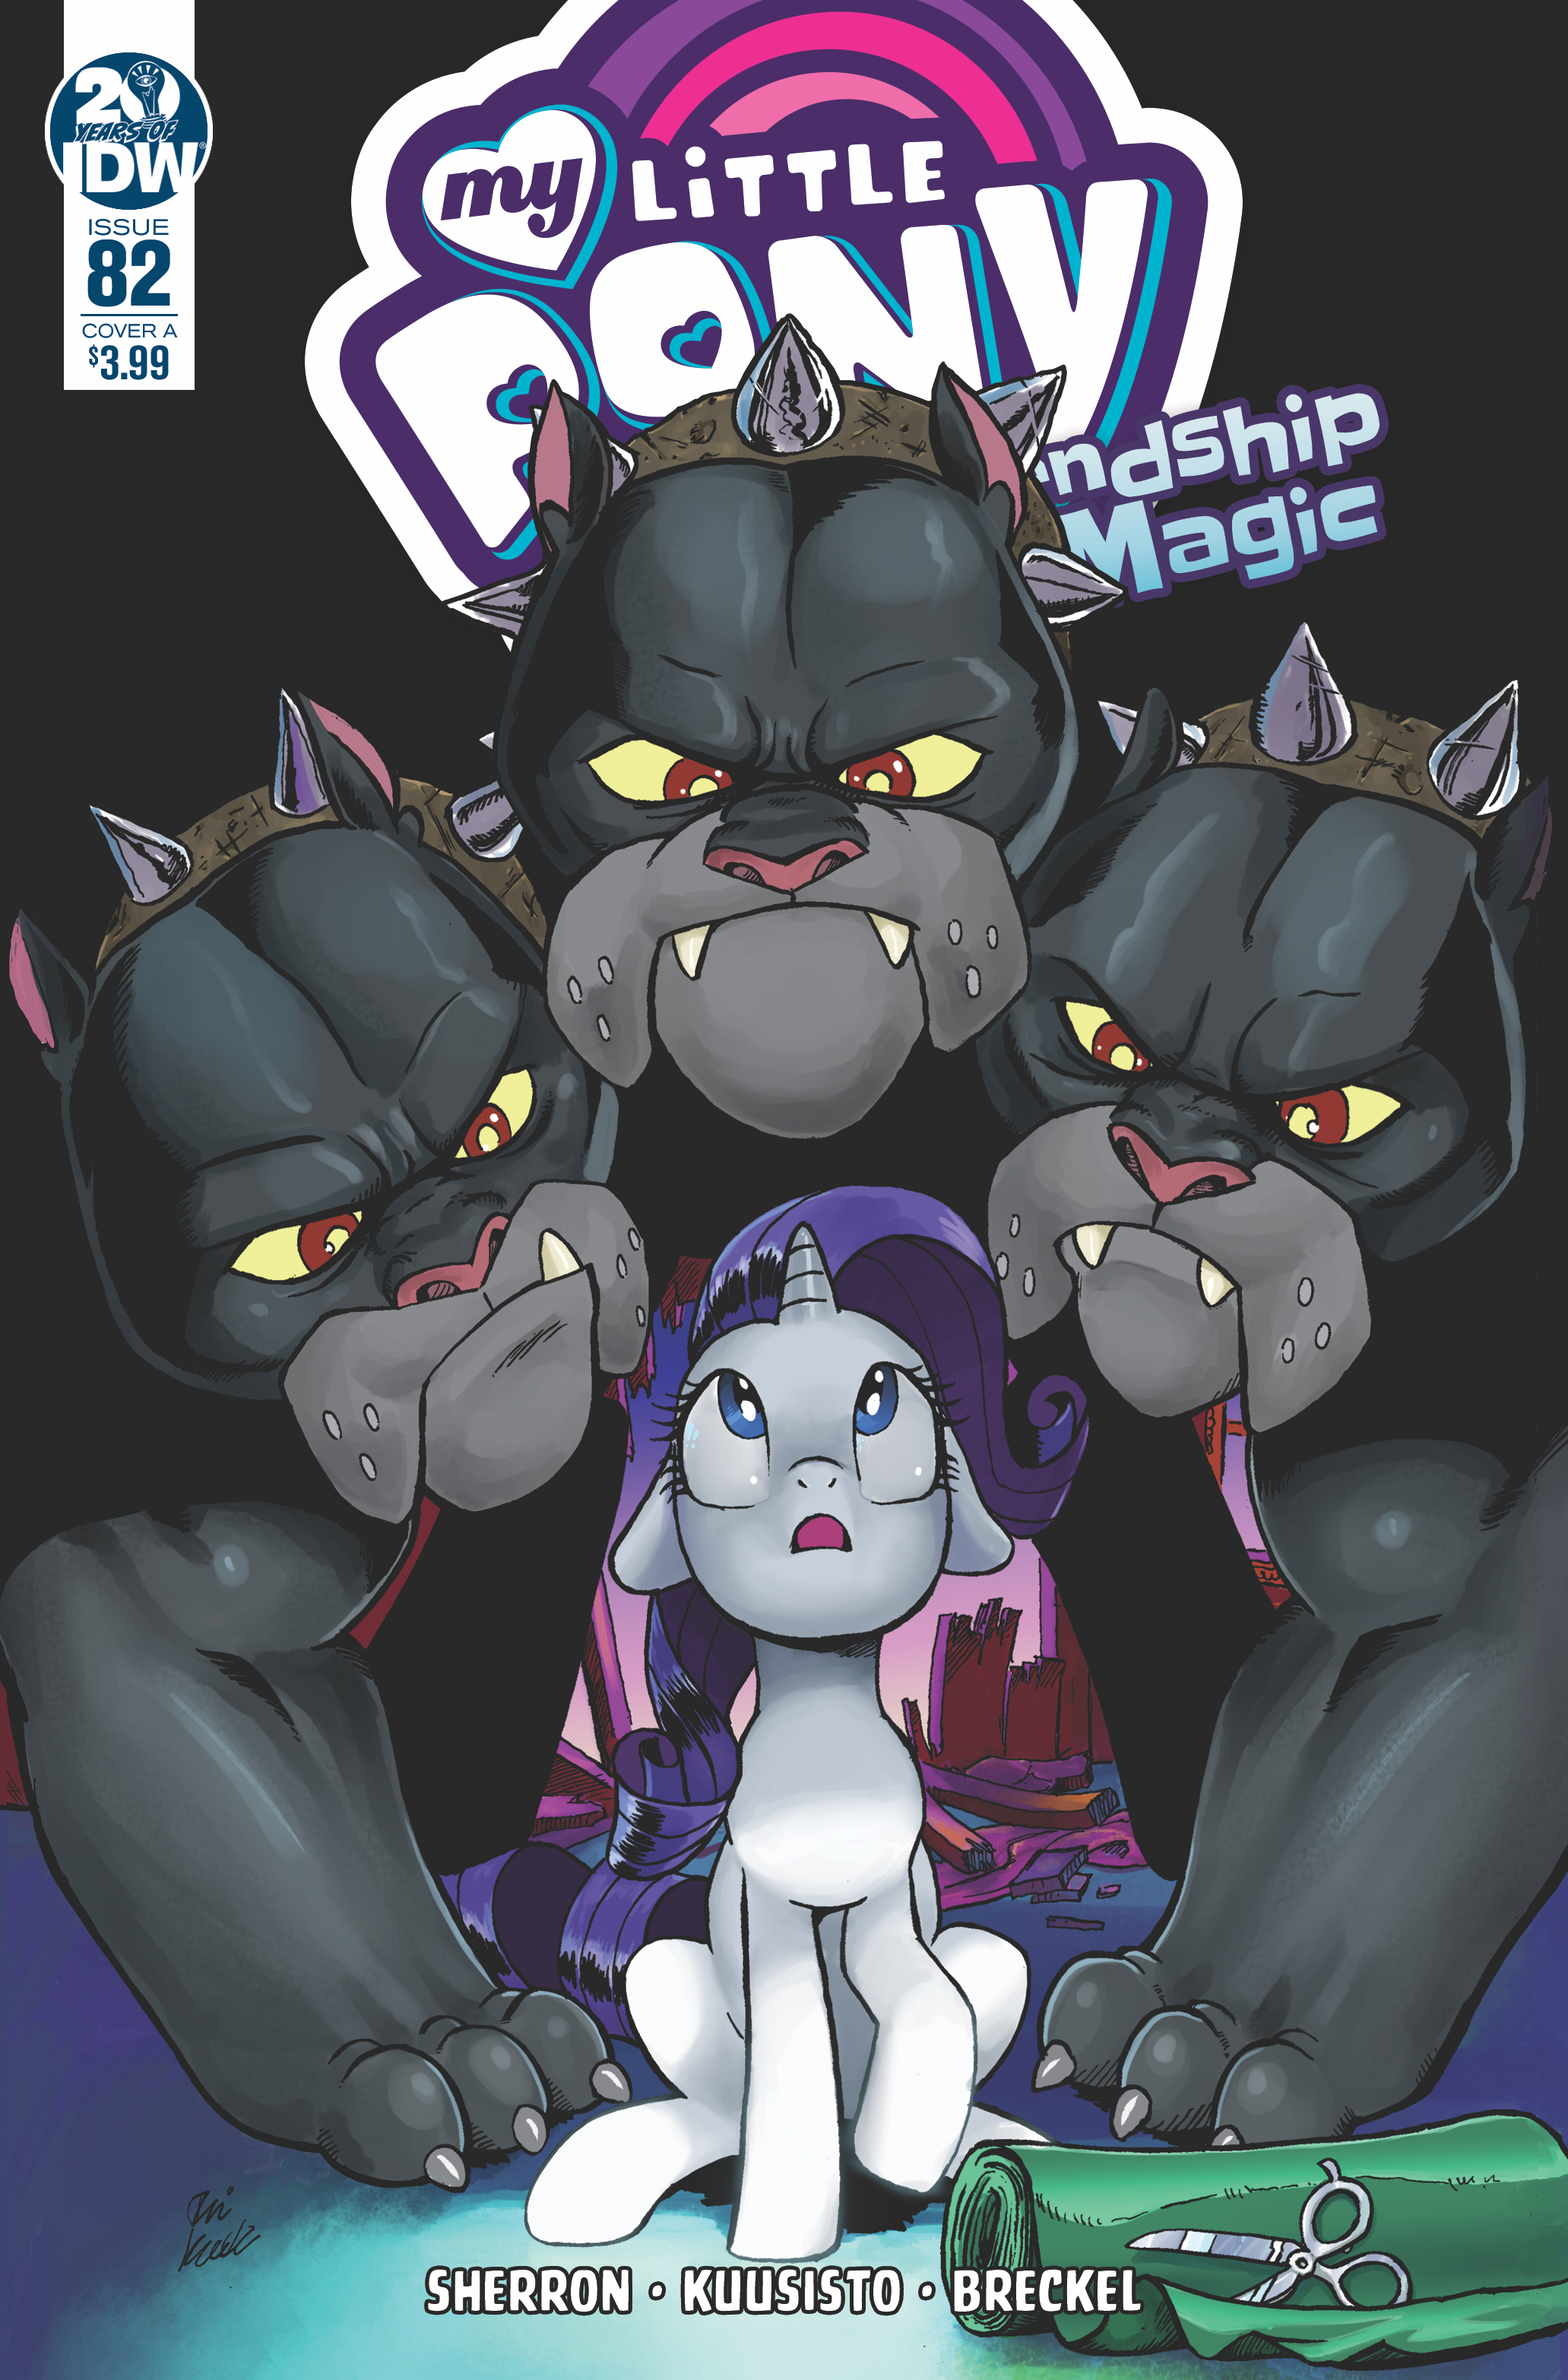 Friendship is Magic Issue 82